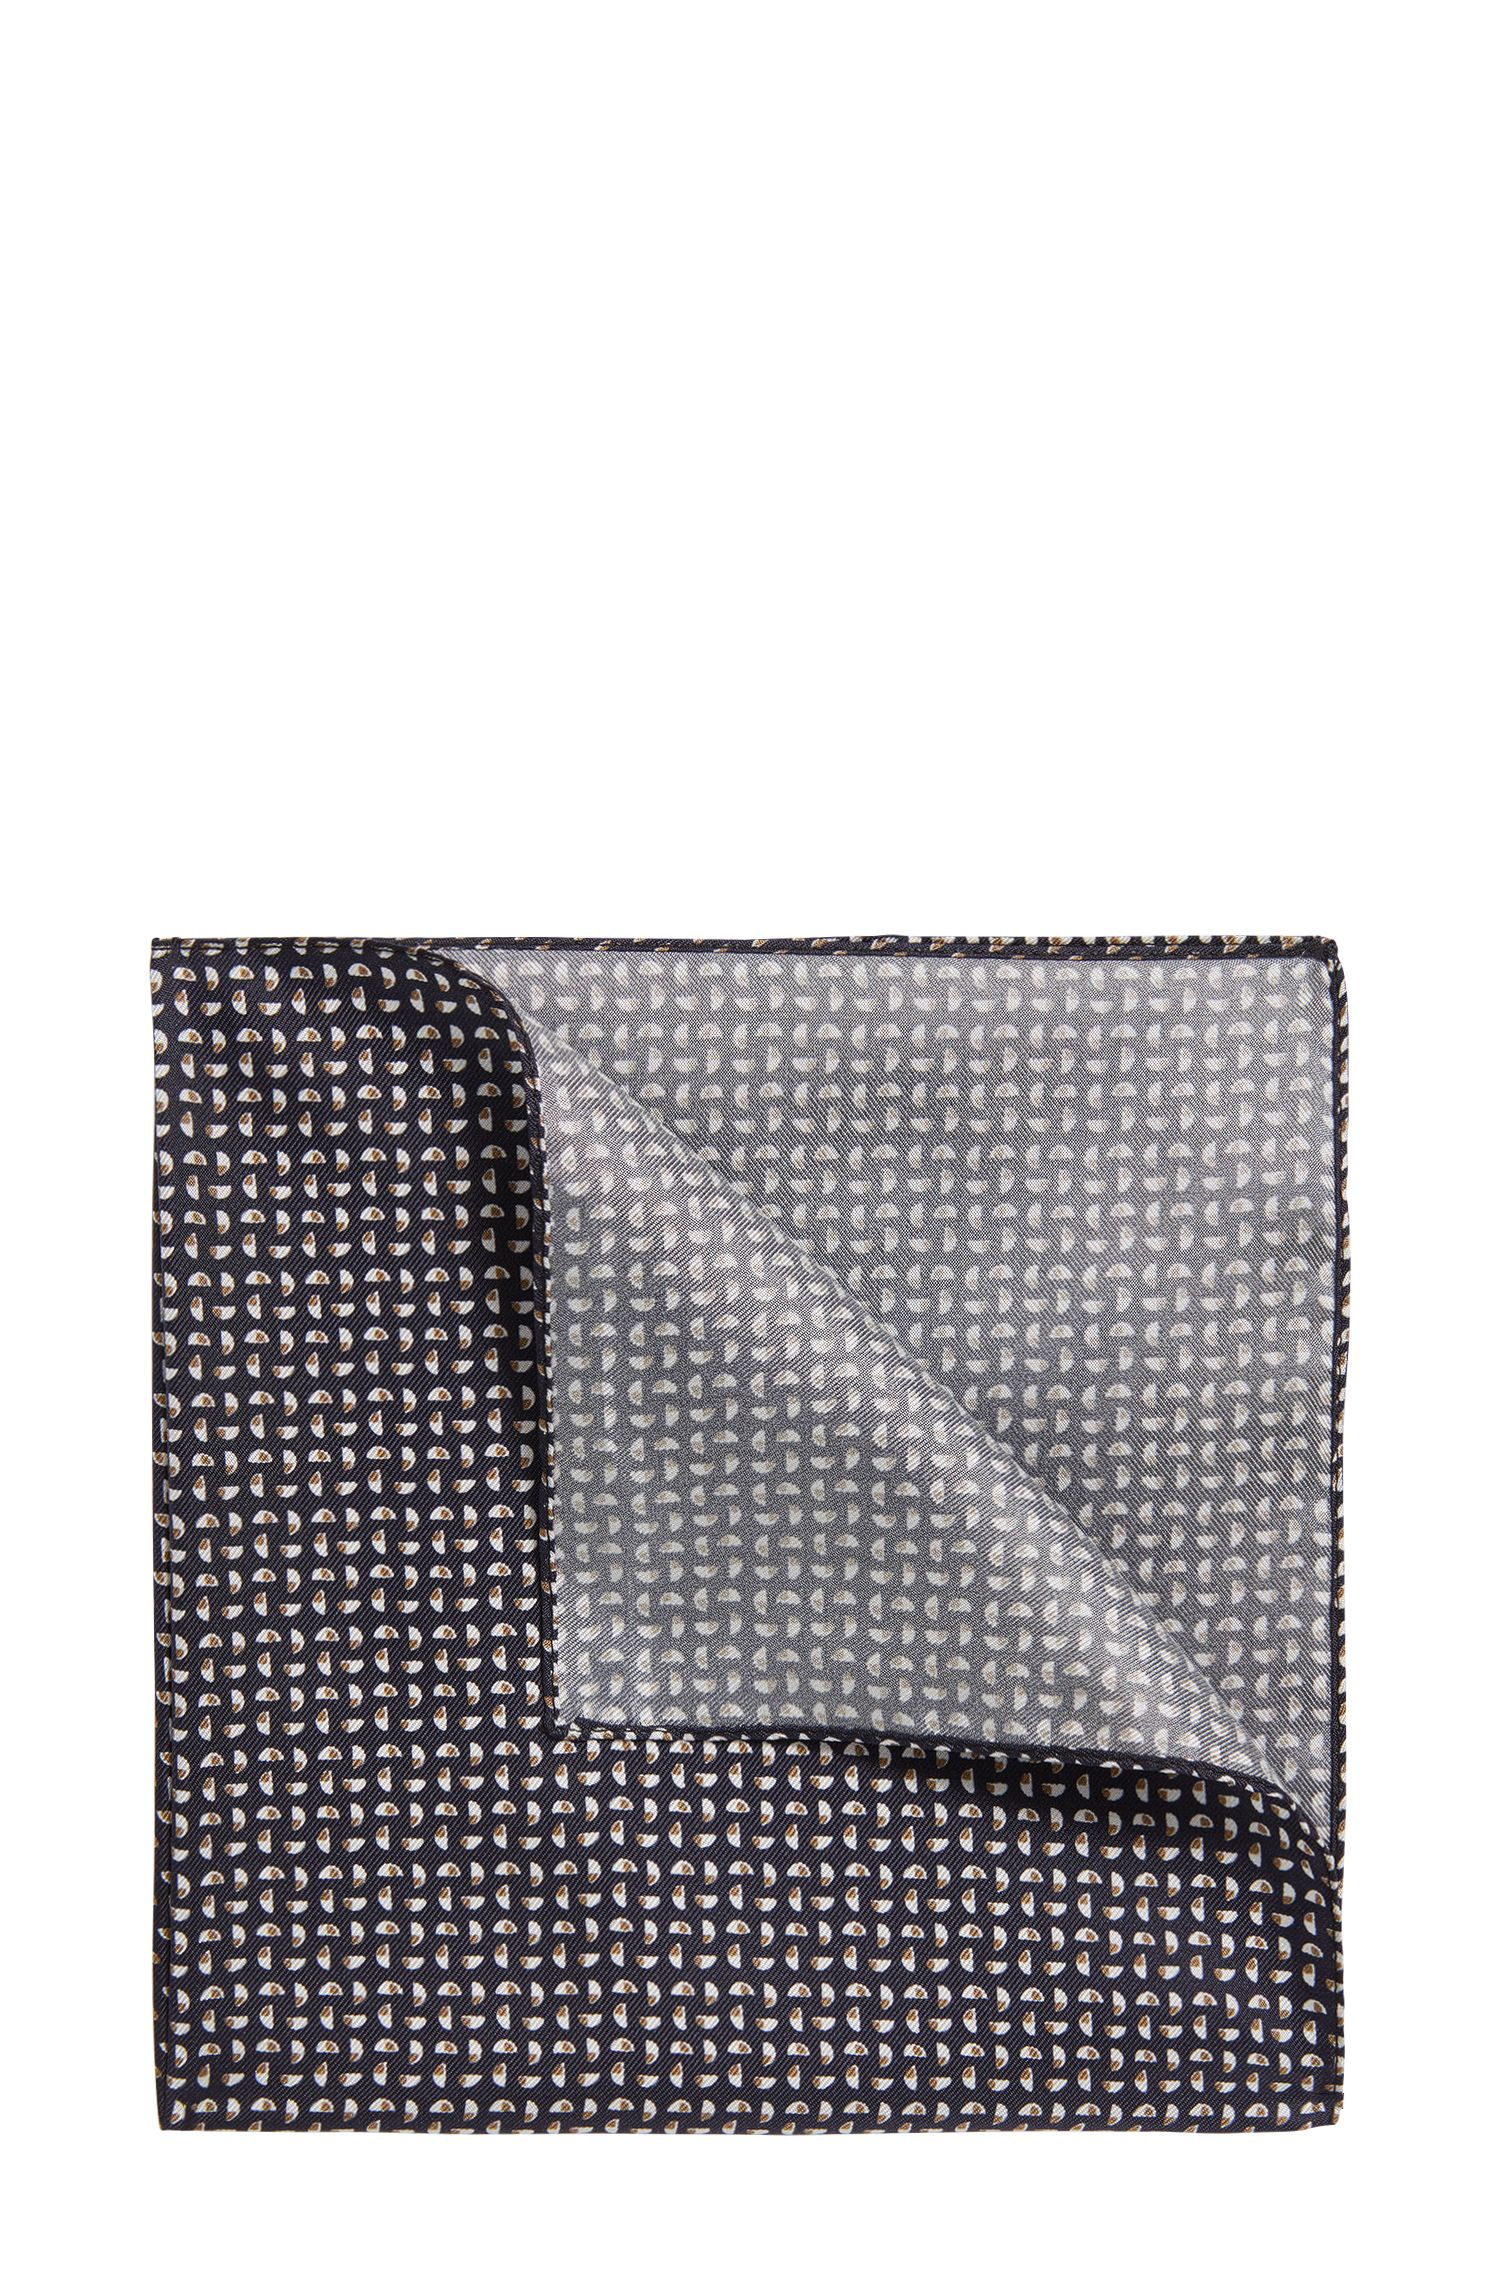 Patterened Italian Silk Pocket Square